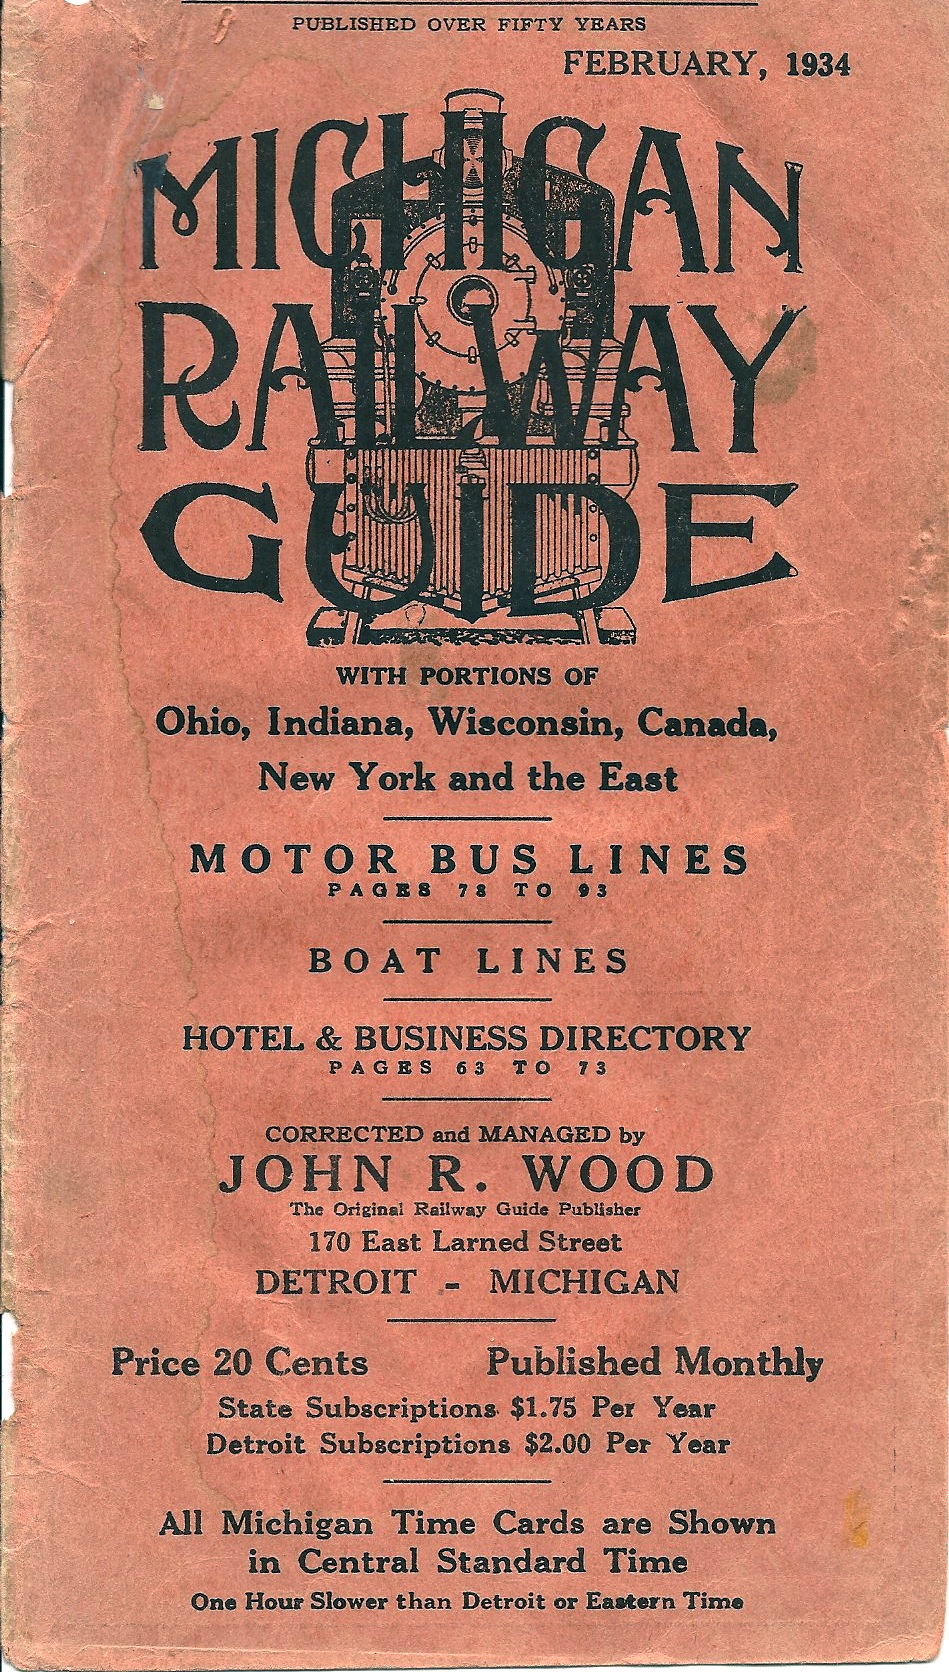 Michigan Railway Guide 1934